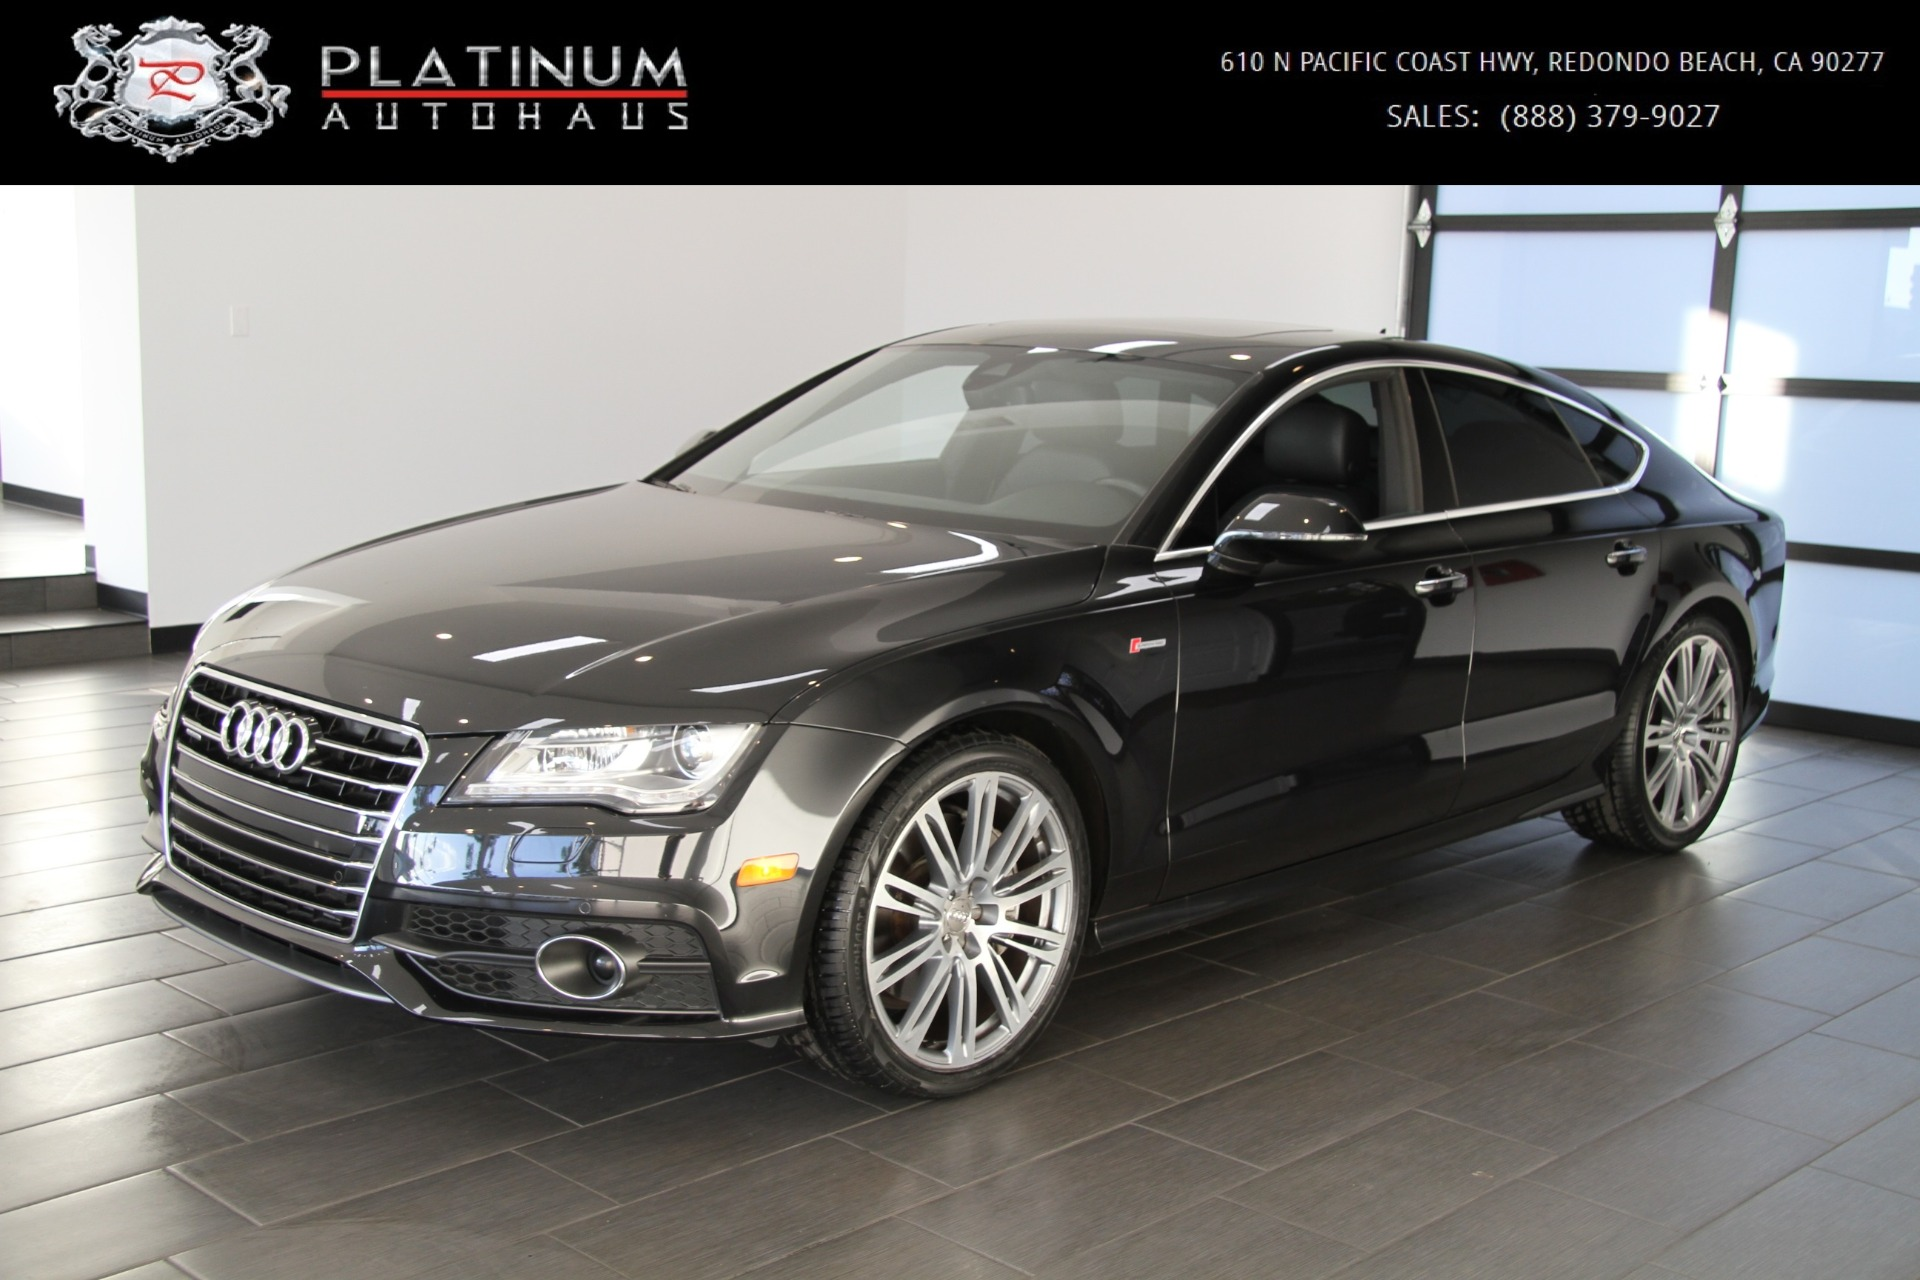 Audi Dealership Near Me >> 2013 Audi A7 3.0T quattro Prestige S-Line Stock # 6106 for ...